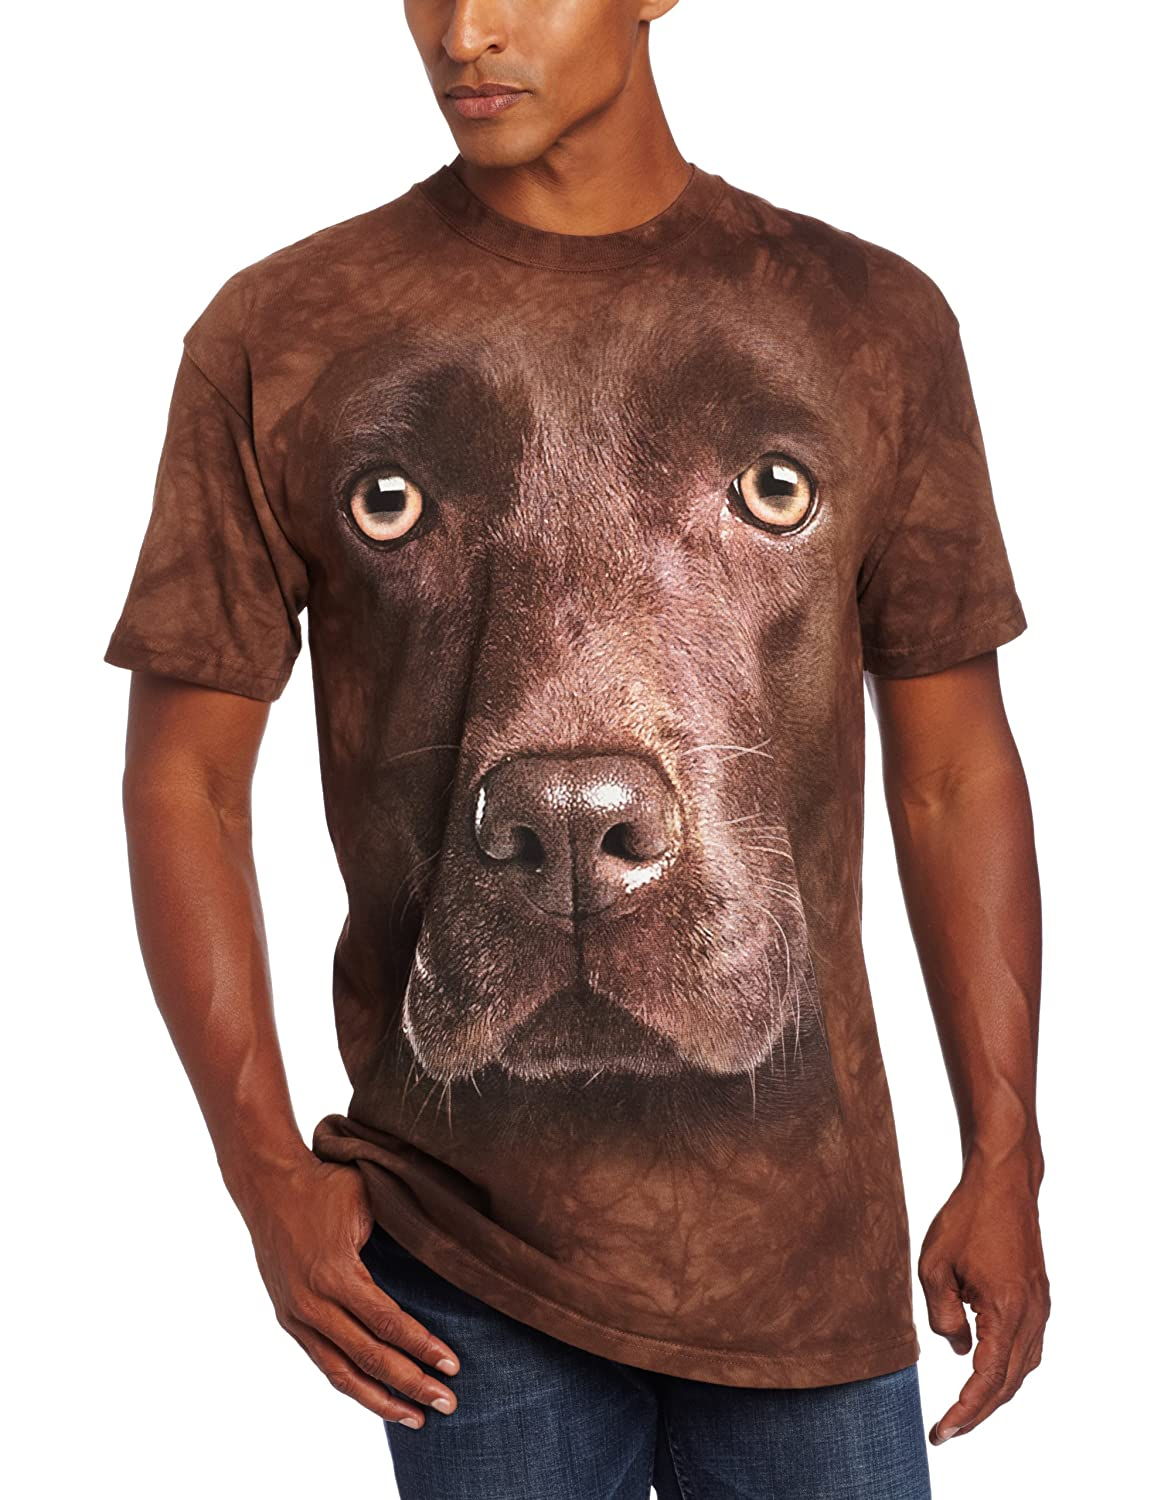 The Mountain Men's Chocolate Lab Face T-Shirt 103550